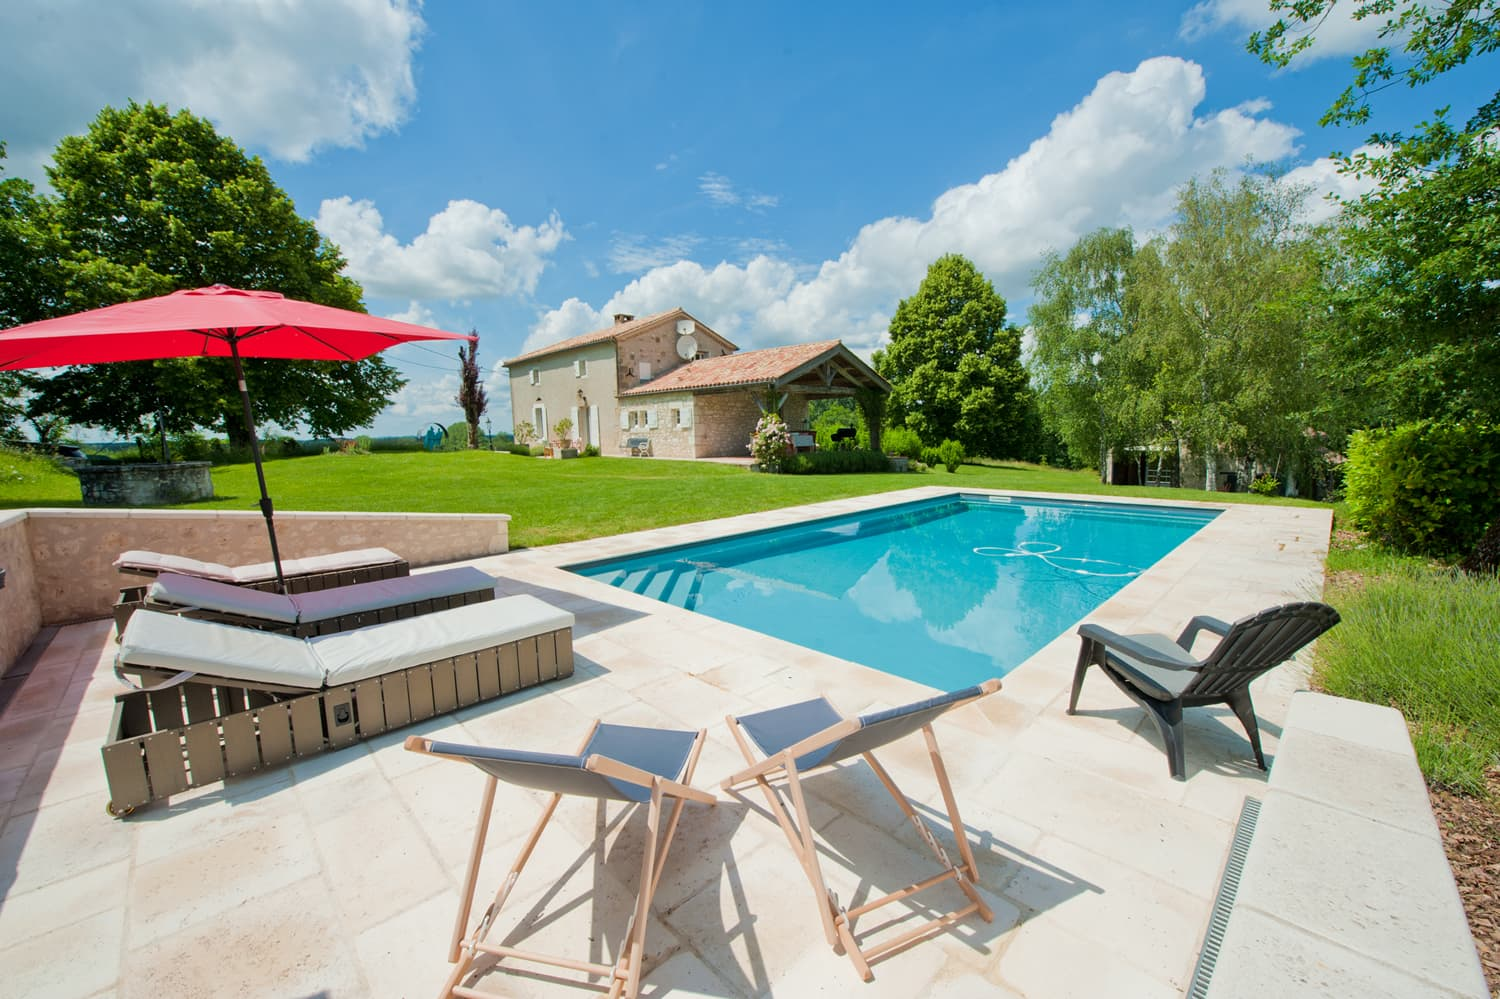 Rental accommodation in Lot-et-Garonne with private, heated pool